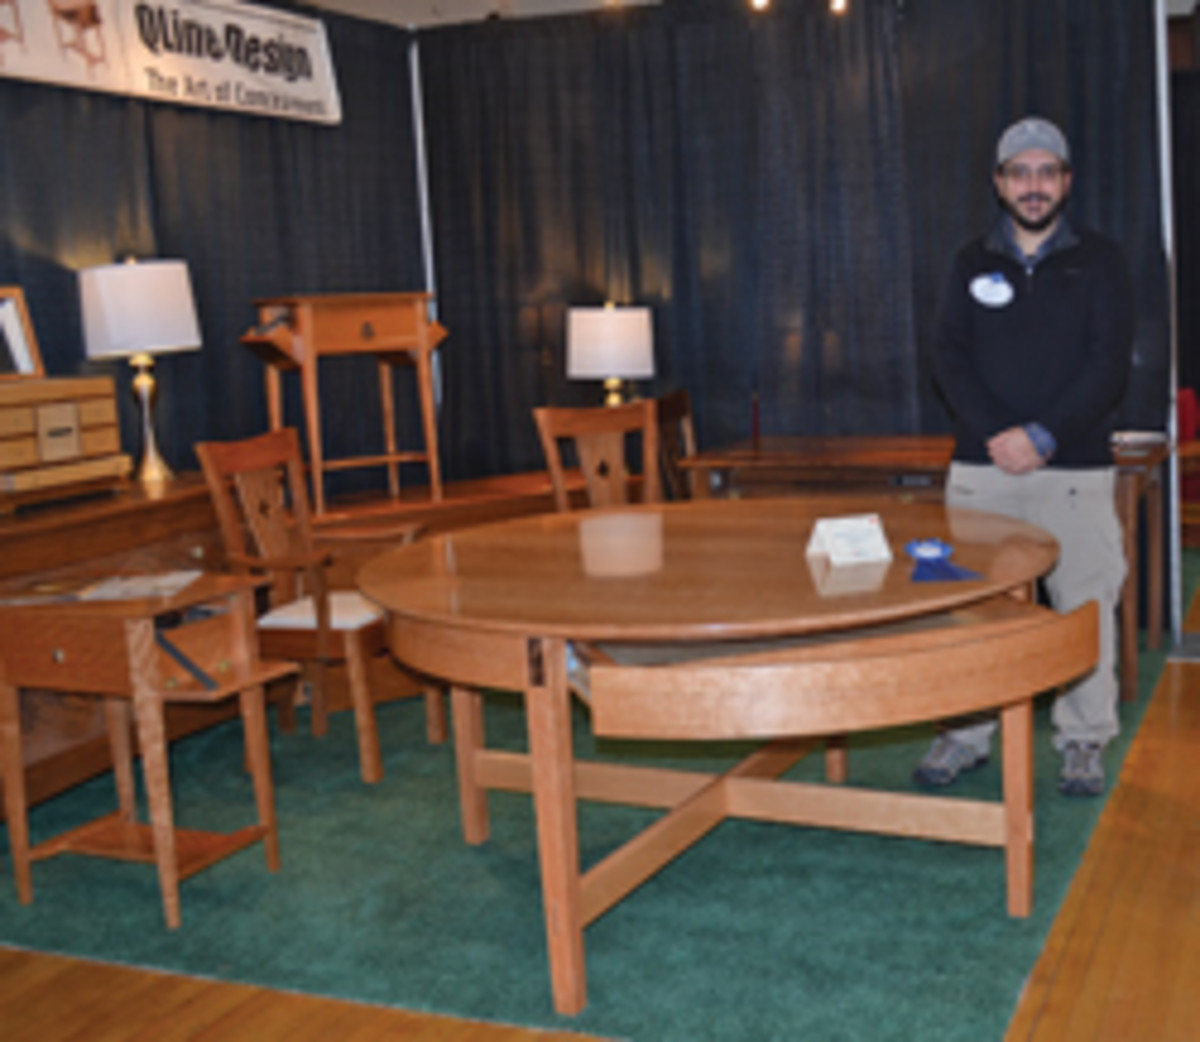 Matthew Dworman of QLine Design in Kingston, N.H., won the Rhode Island show's new product debut award.